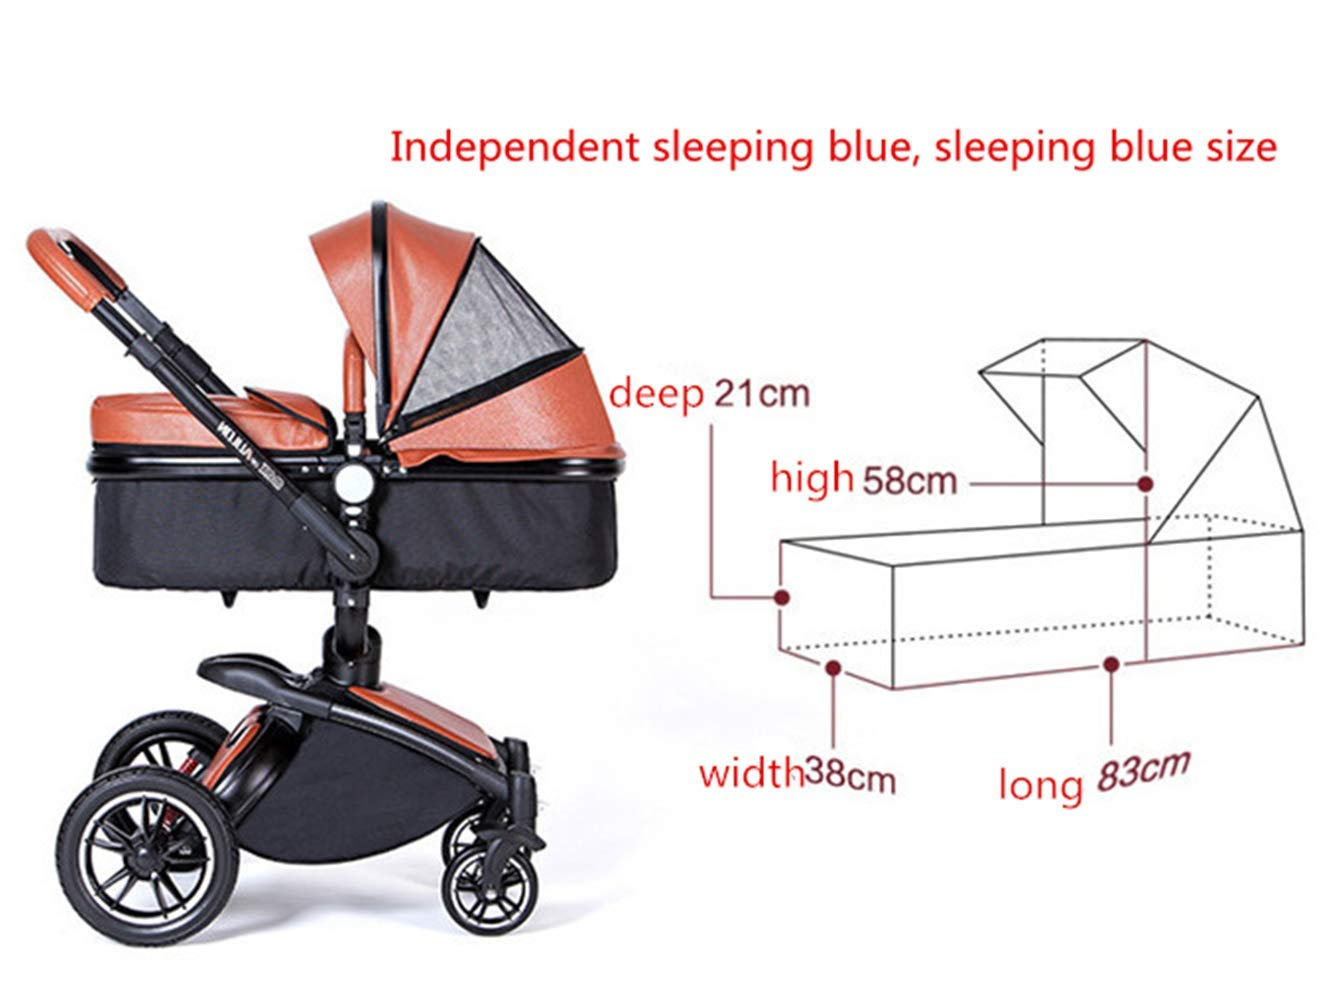 Baby Stroller High Landscape Foldable Two-Way Baby Car Can Sit Lie Children Bb Cart 360 Degree Can Be Rotated Ddpp Aluminum frame. Adjustable weather shield. Big sleeping basket. High view. Reversible stroller seat. Folding shock absorber. The aluminum alloy frame has a good luster. It is lighter than iron (or steel, copper) and does not rust, so it can be used for a long time; the adjustable handlebar can meet the needs of people of different heights and can adjust the push position; the reversible stroller seat makes the baby easy to face For parents or facing the world. .PU wheel, and can roll on rough terrain, such as grass, gravel road, sidewalk, sand and so on. The rotating front wheel can be locked in a precise position, and the suspension spring mounted on it effectively absorbs different vibrations to protect the baby's brain and body. The one-touch parking brake brakes both rear wheels quickly and thoroughly, keeping the baby away from danger and risk. 4